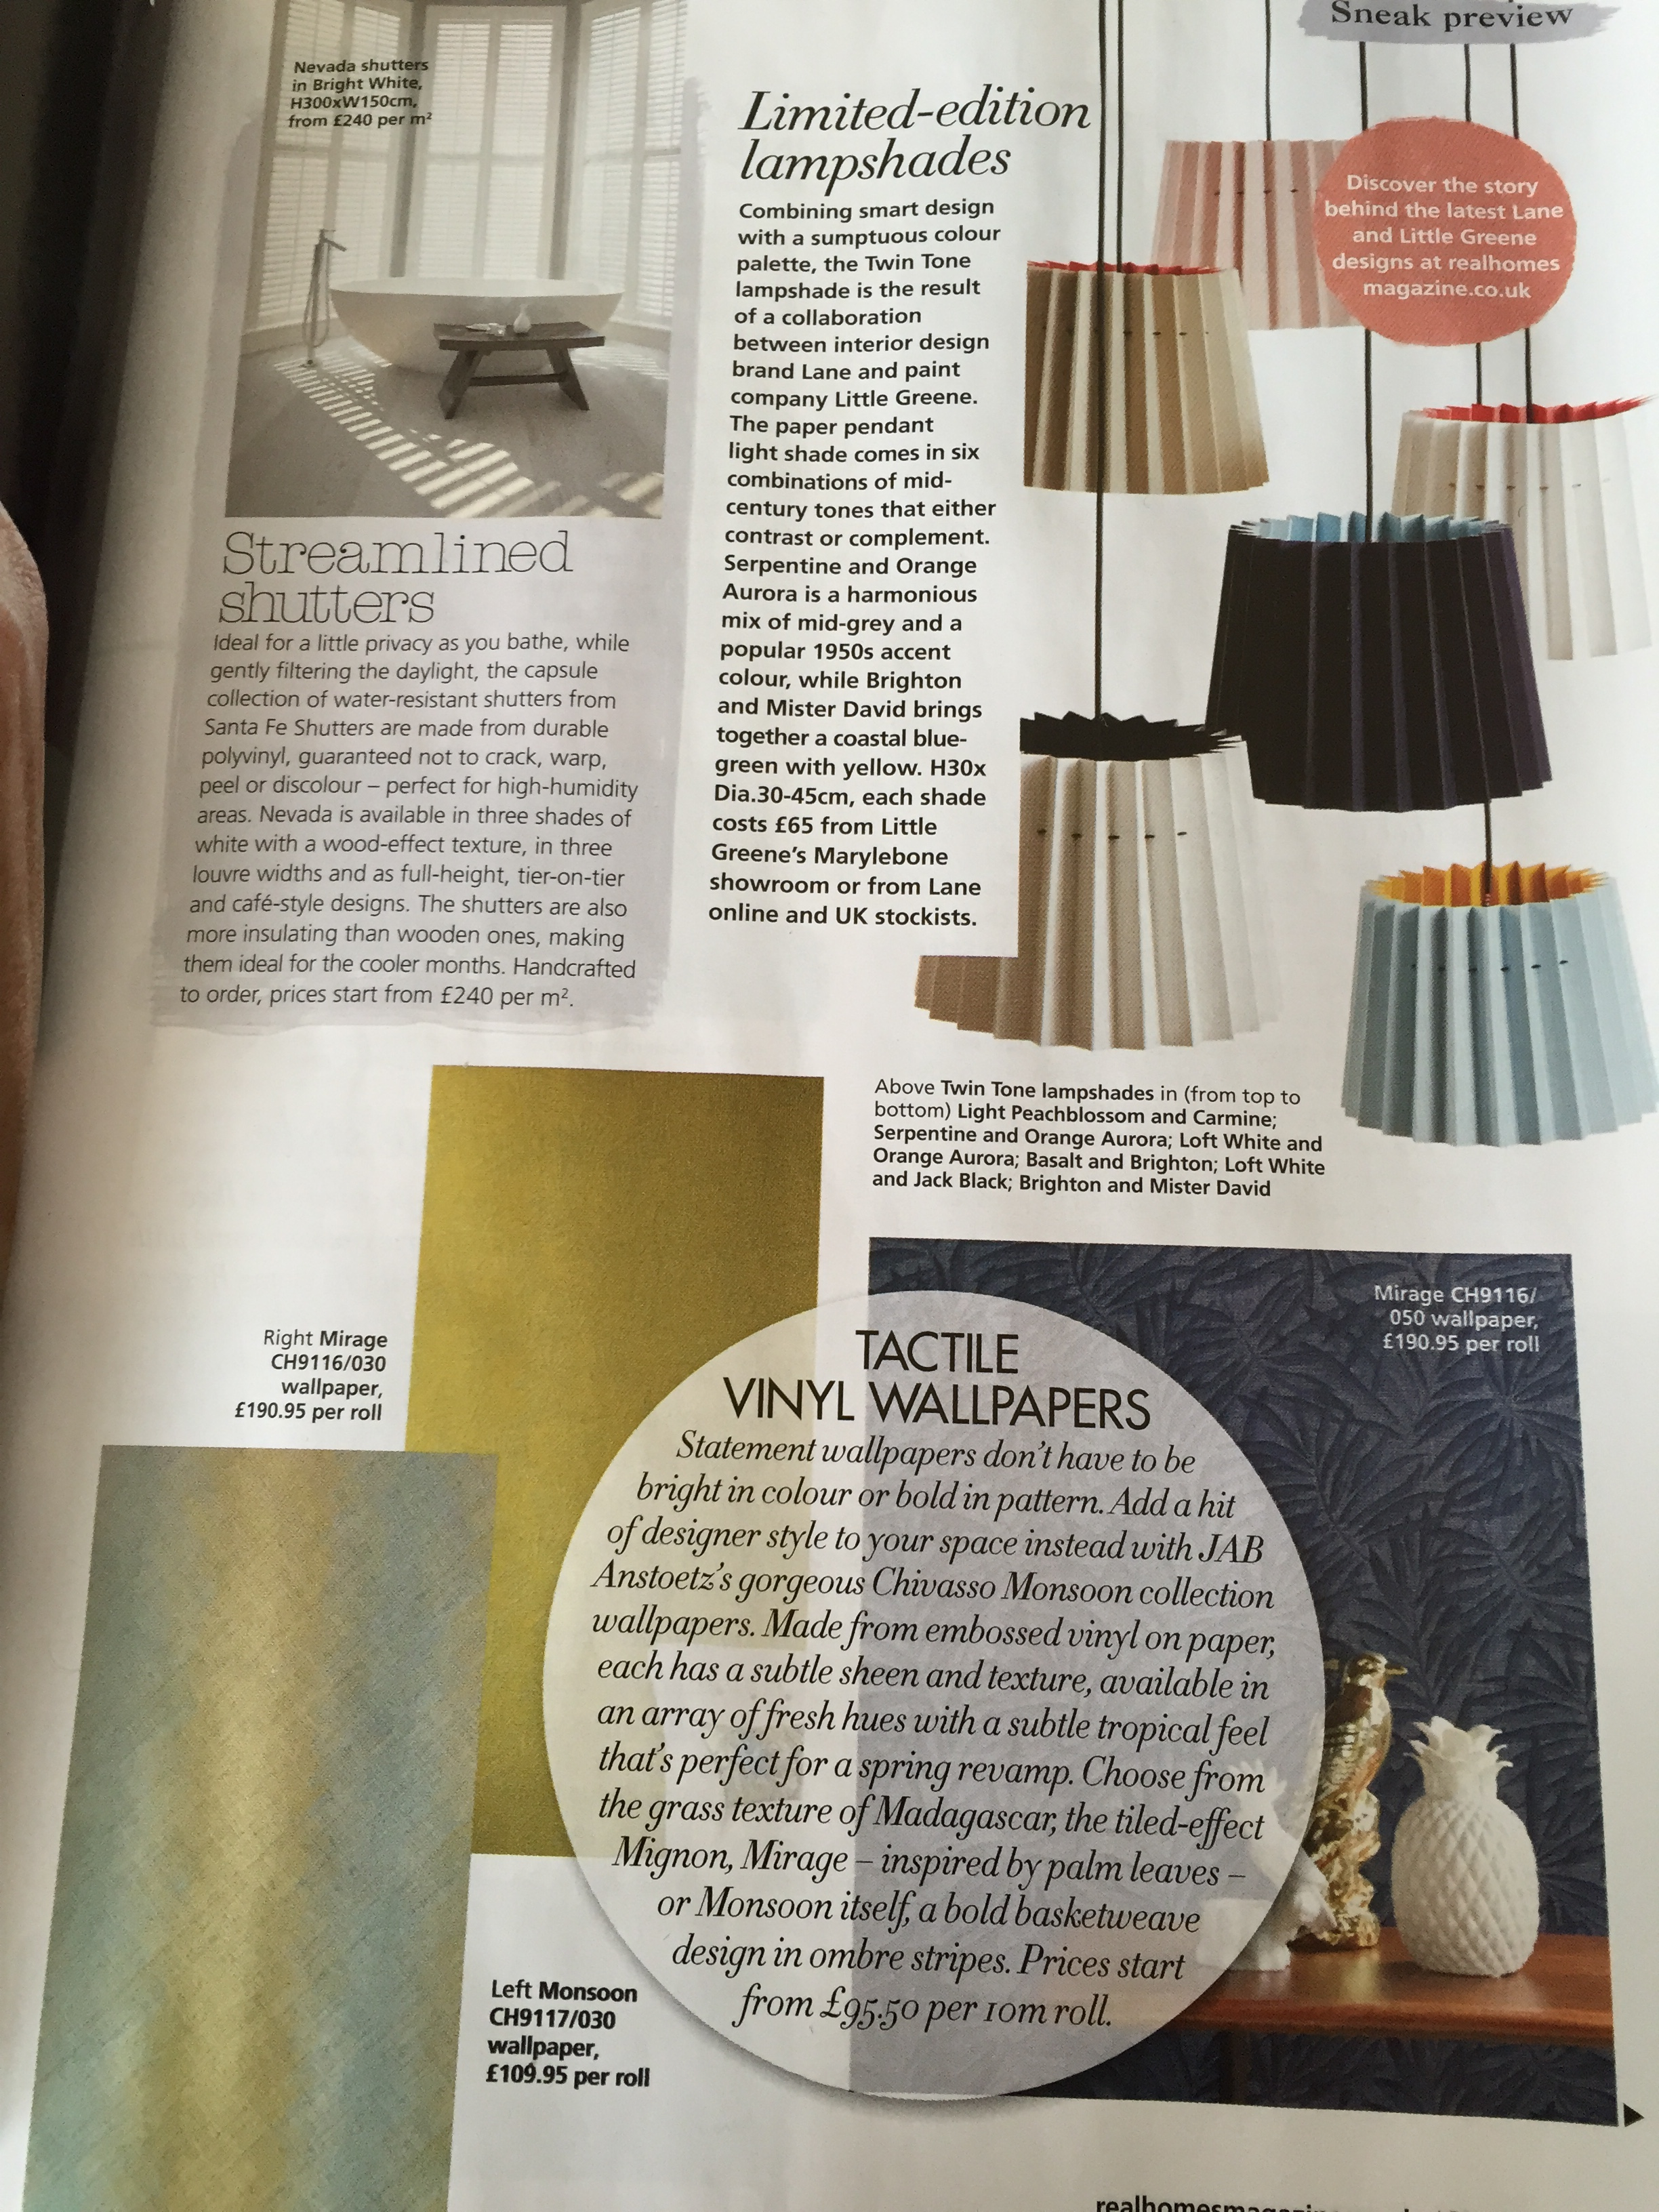 Real Homes, April 2015, Lane & Little Greene Twin Tone Lampshades